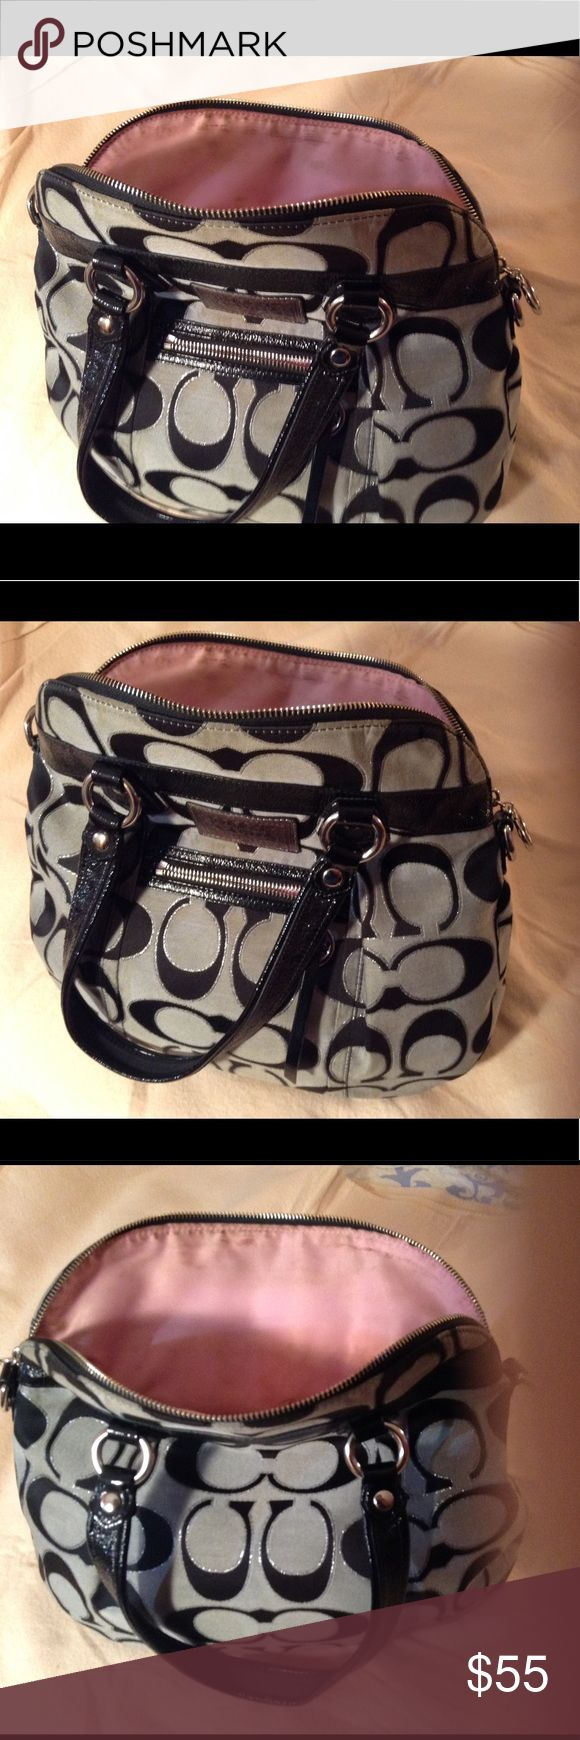 Coach poppy gray & black purse... Large purse Coach Poppy purse. Front pocket. Gray with black. Length 12 heights 12. Wear & stains on inside.  Good purse. Coach Bags Satchels